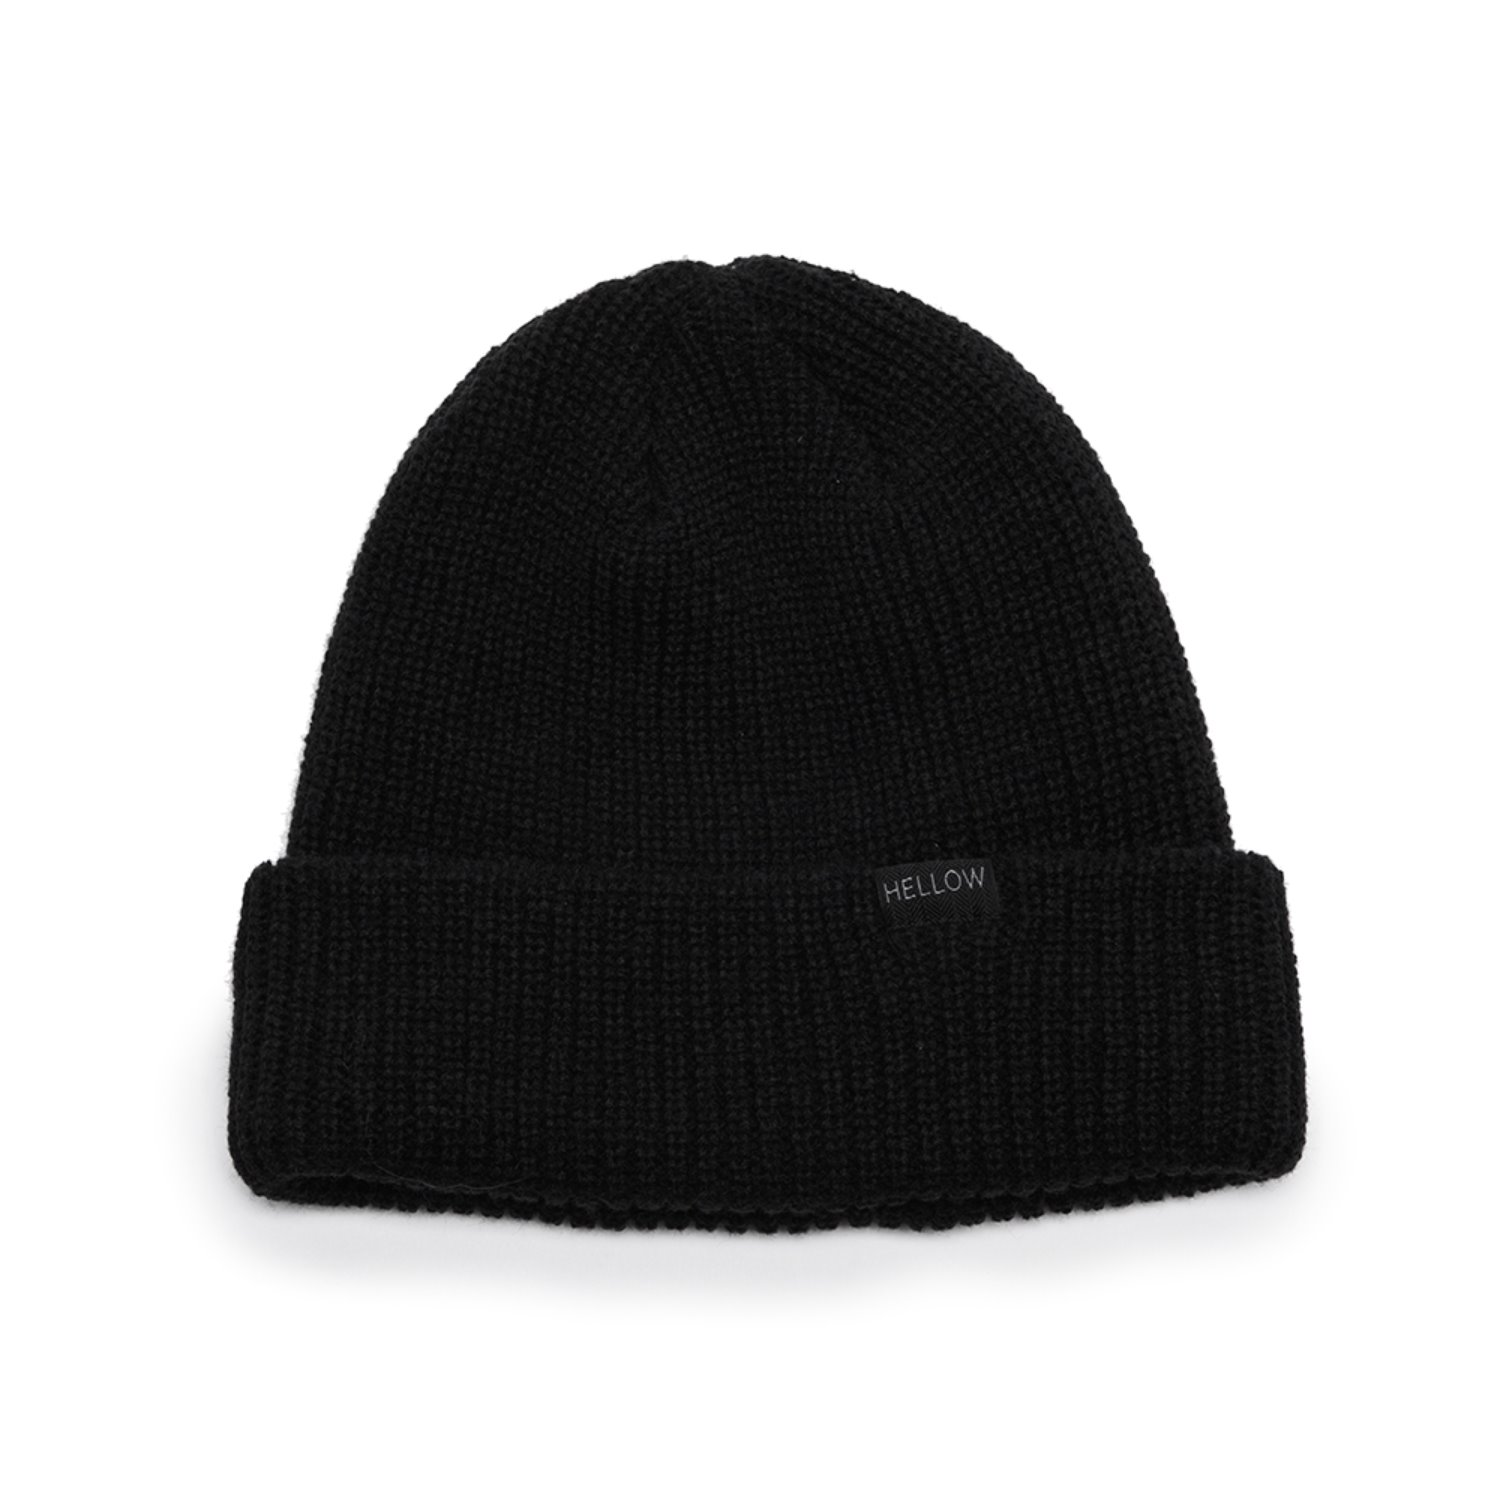 1819-SOLID BEANIE- BLACK